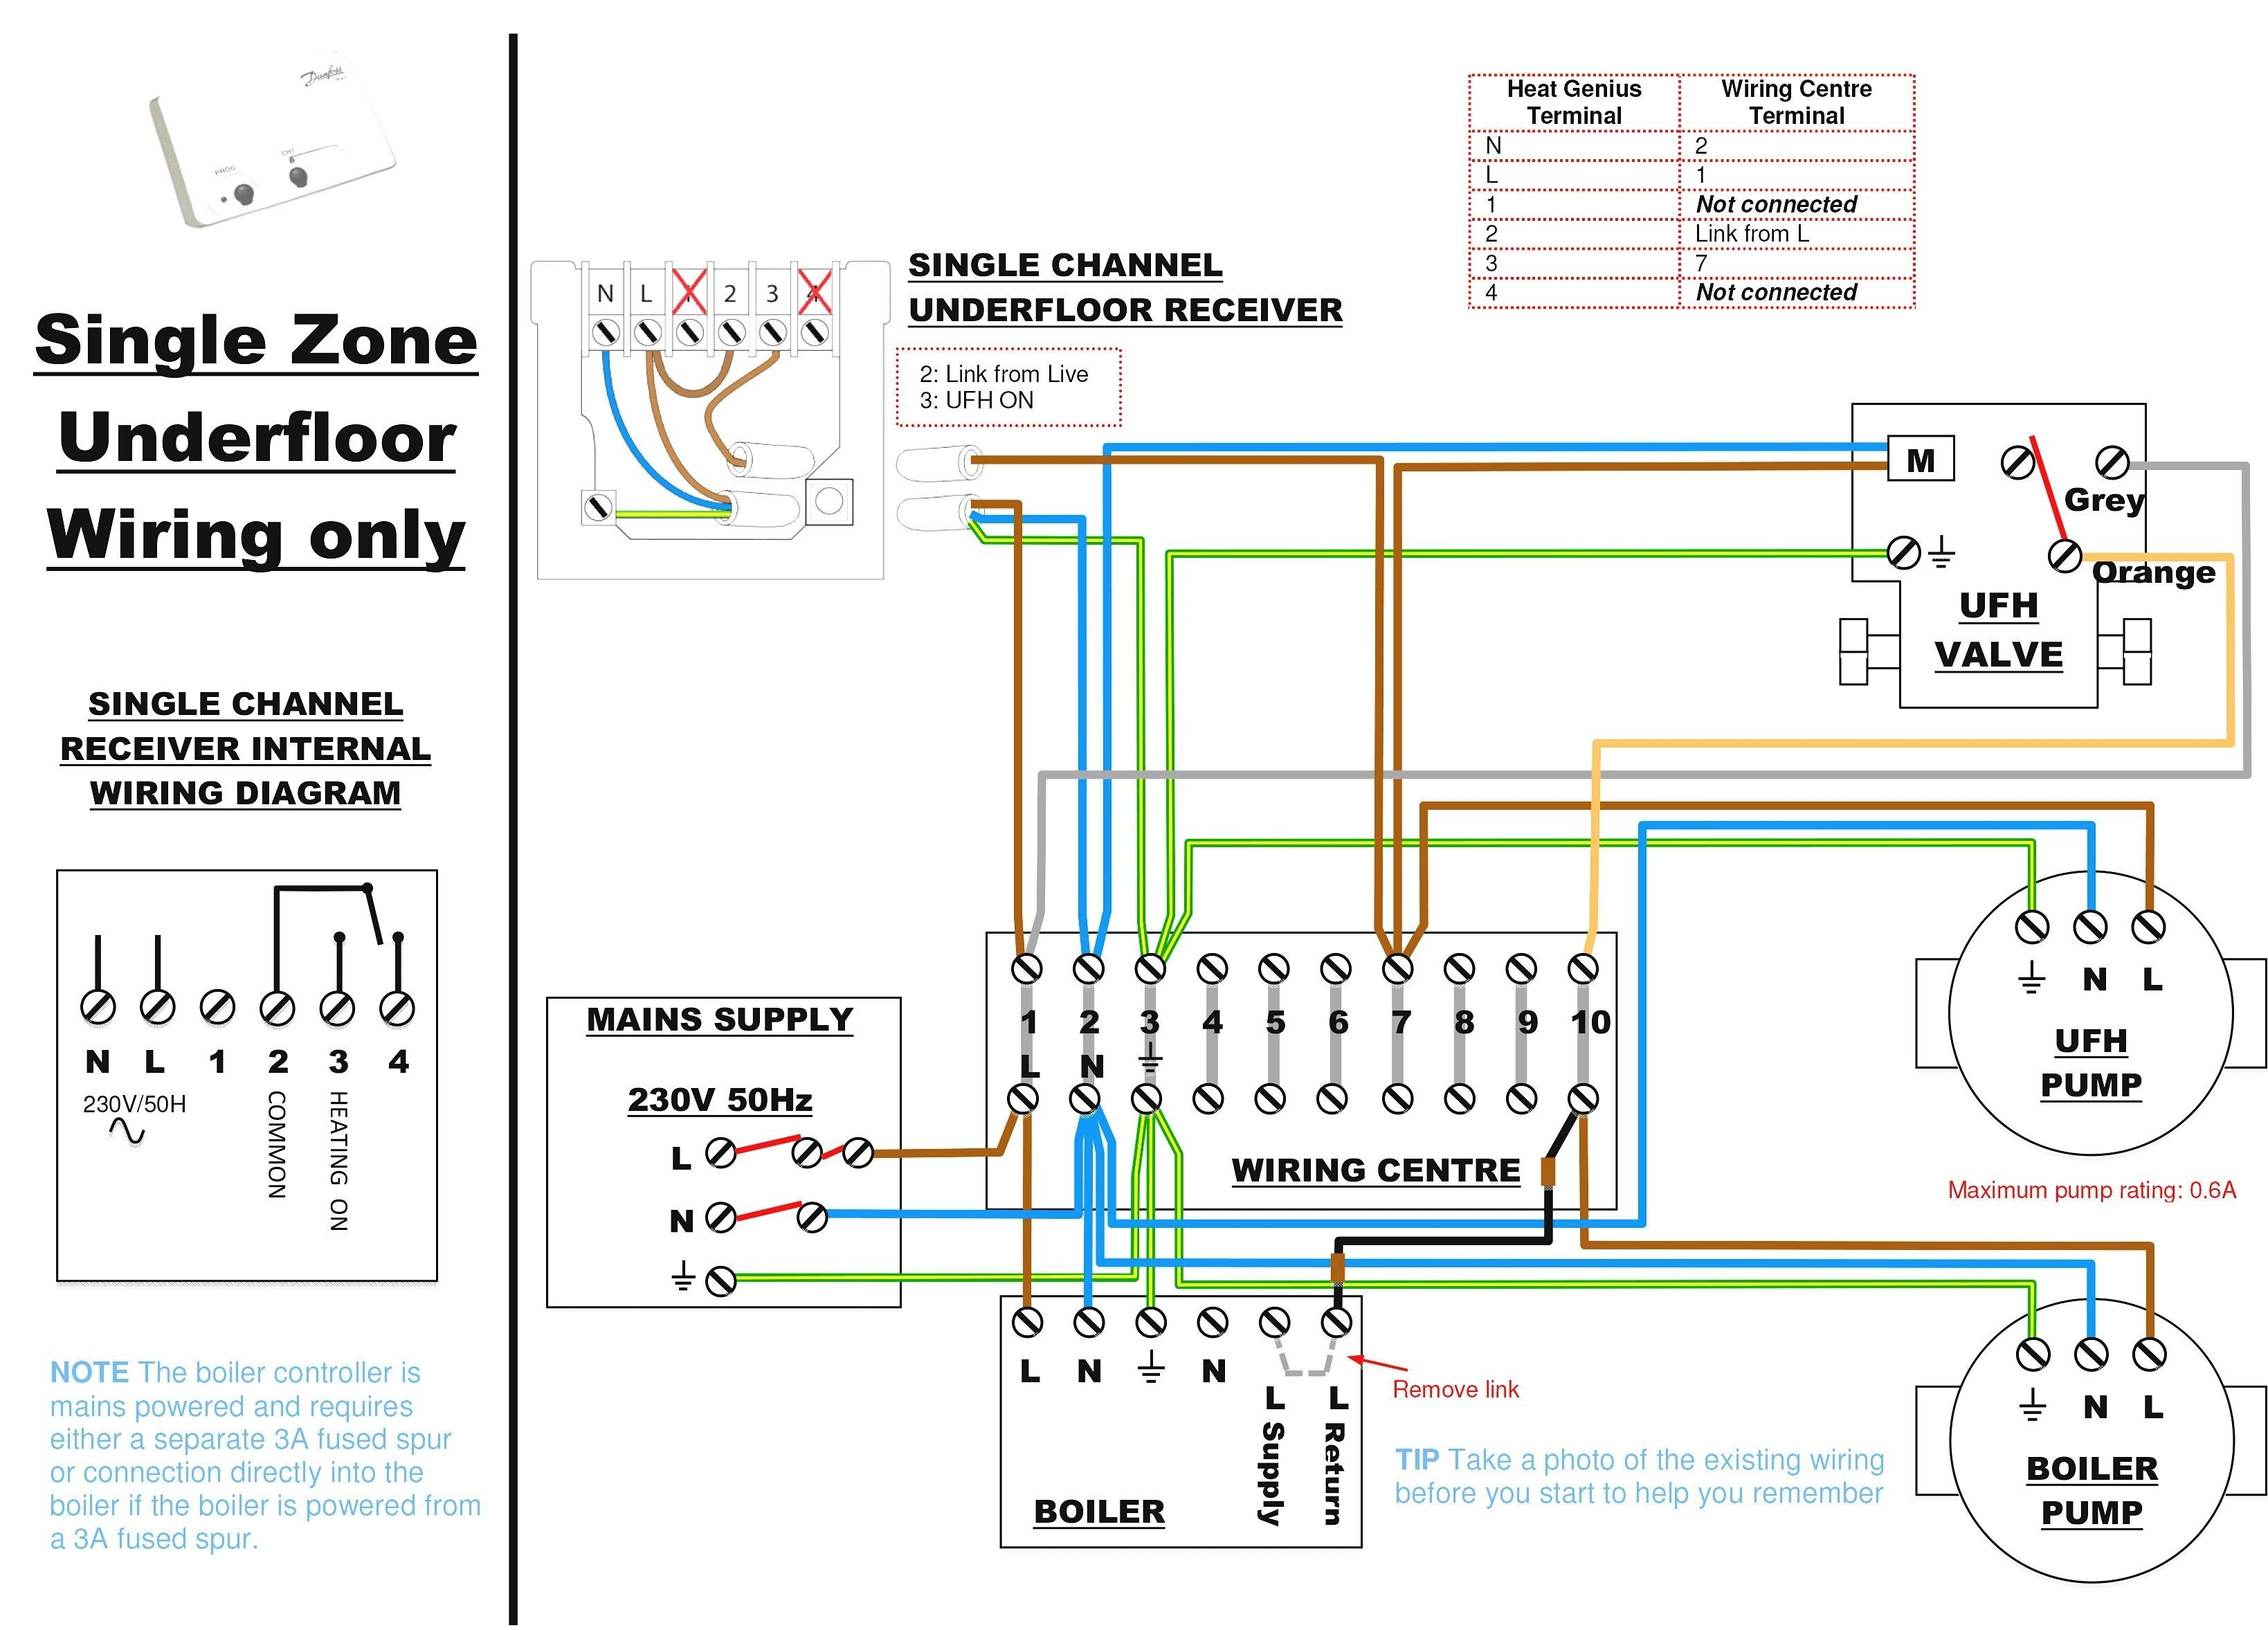 hight resolution of wiring diagram for wet underfloor heating wiring diagram centre wiring diagram for underfloor heating to combi boiler